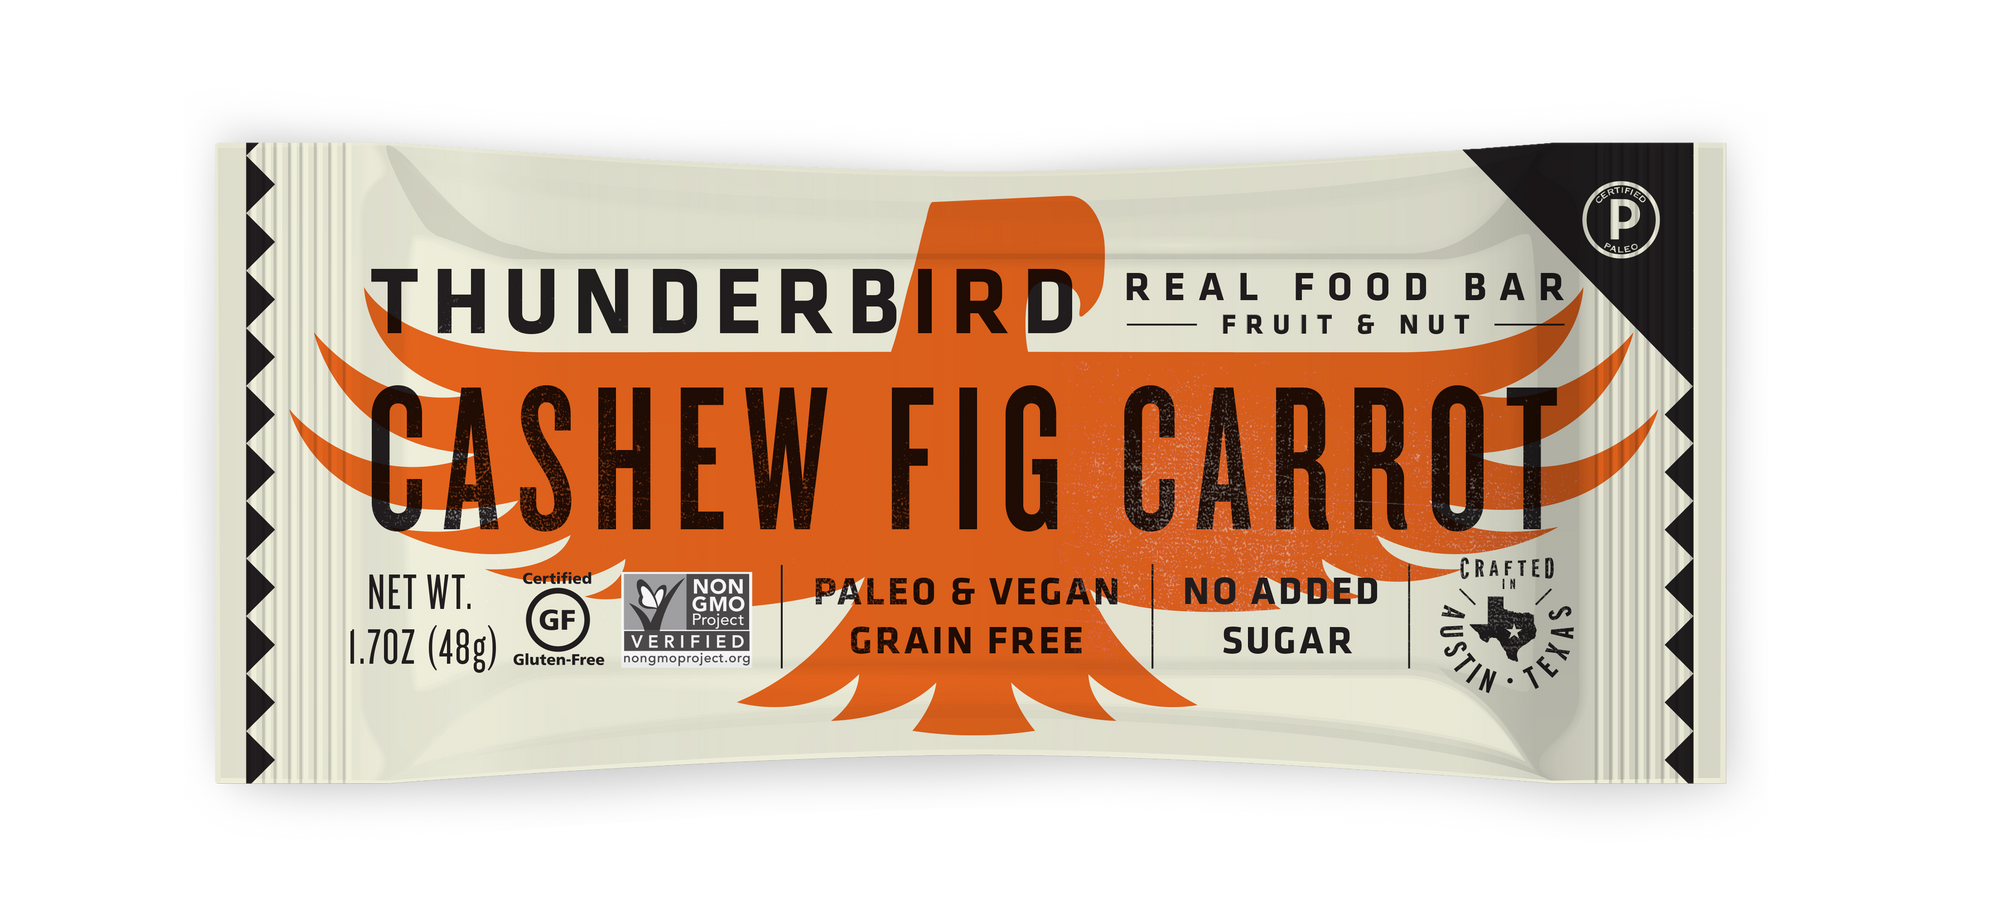 Cashew Fig Carrot - Box of 15 Bars